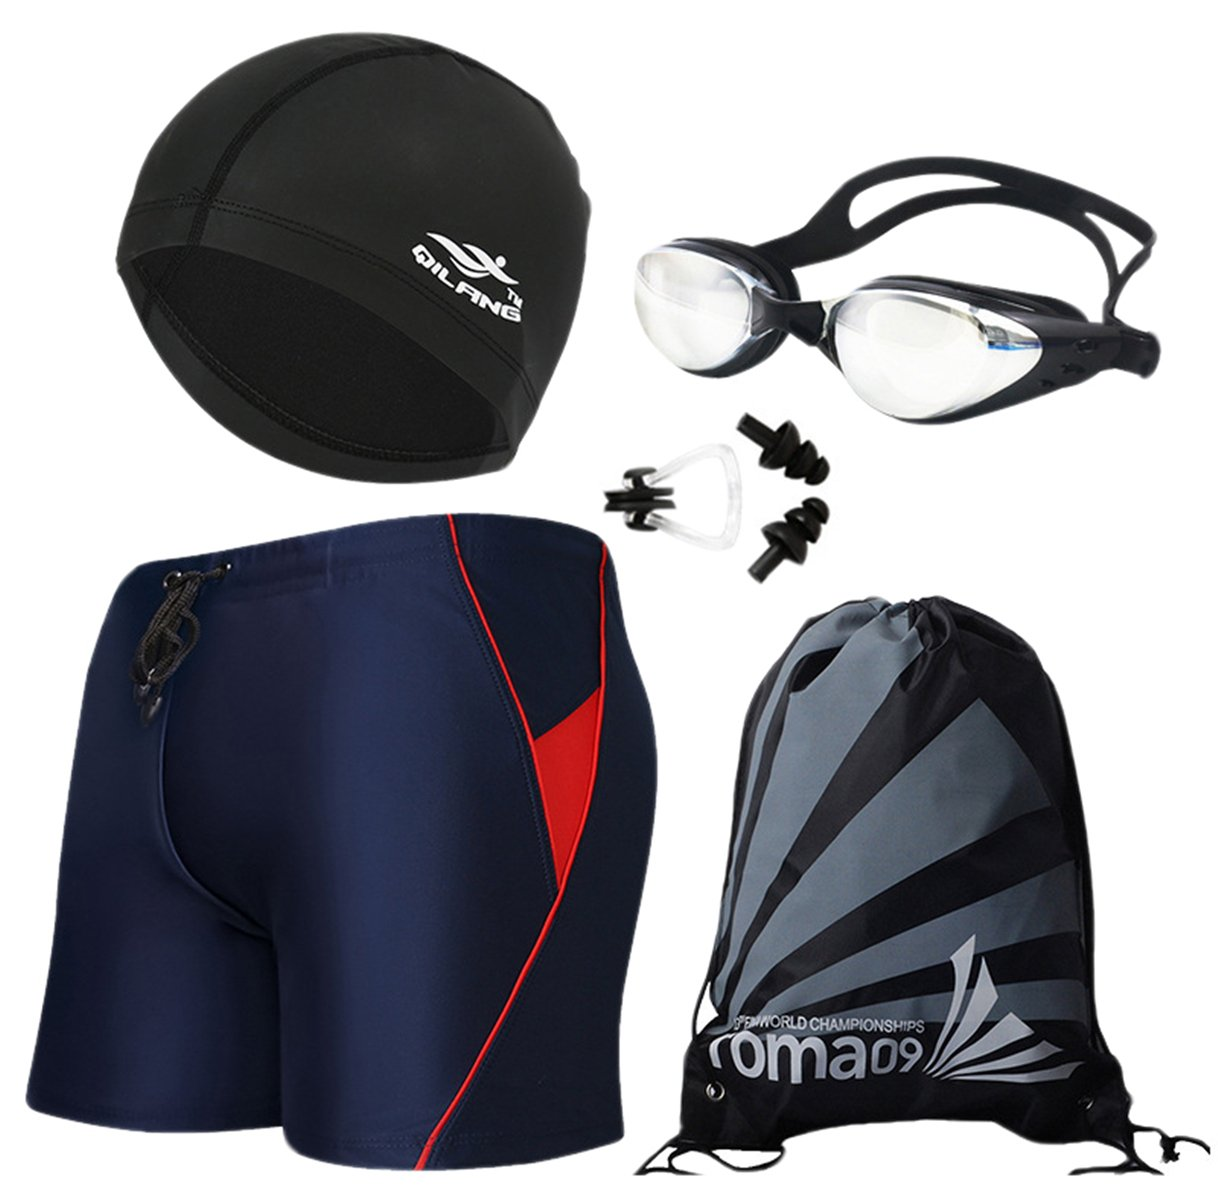 Men's Swimwear Suits, Swim Shorts + Swim Goggles + Swimming Cap + Swimsuit Nose Clip and Ear Plugs + Beach Store Bag, 1# Navy Blue + Red, Tag Size XL = US S